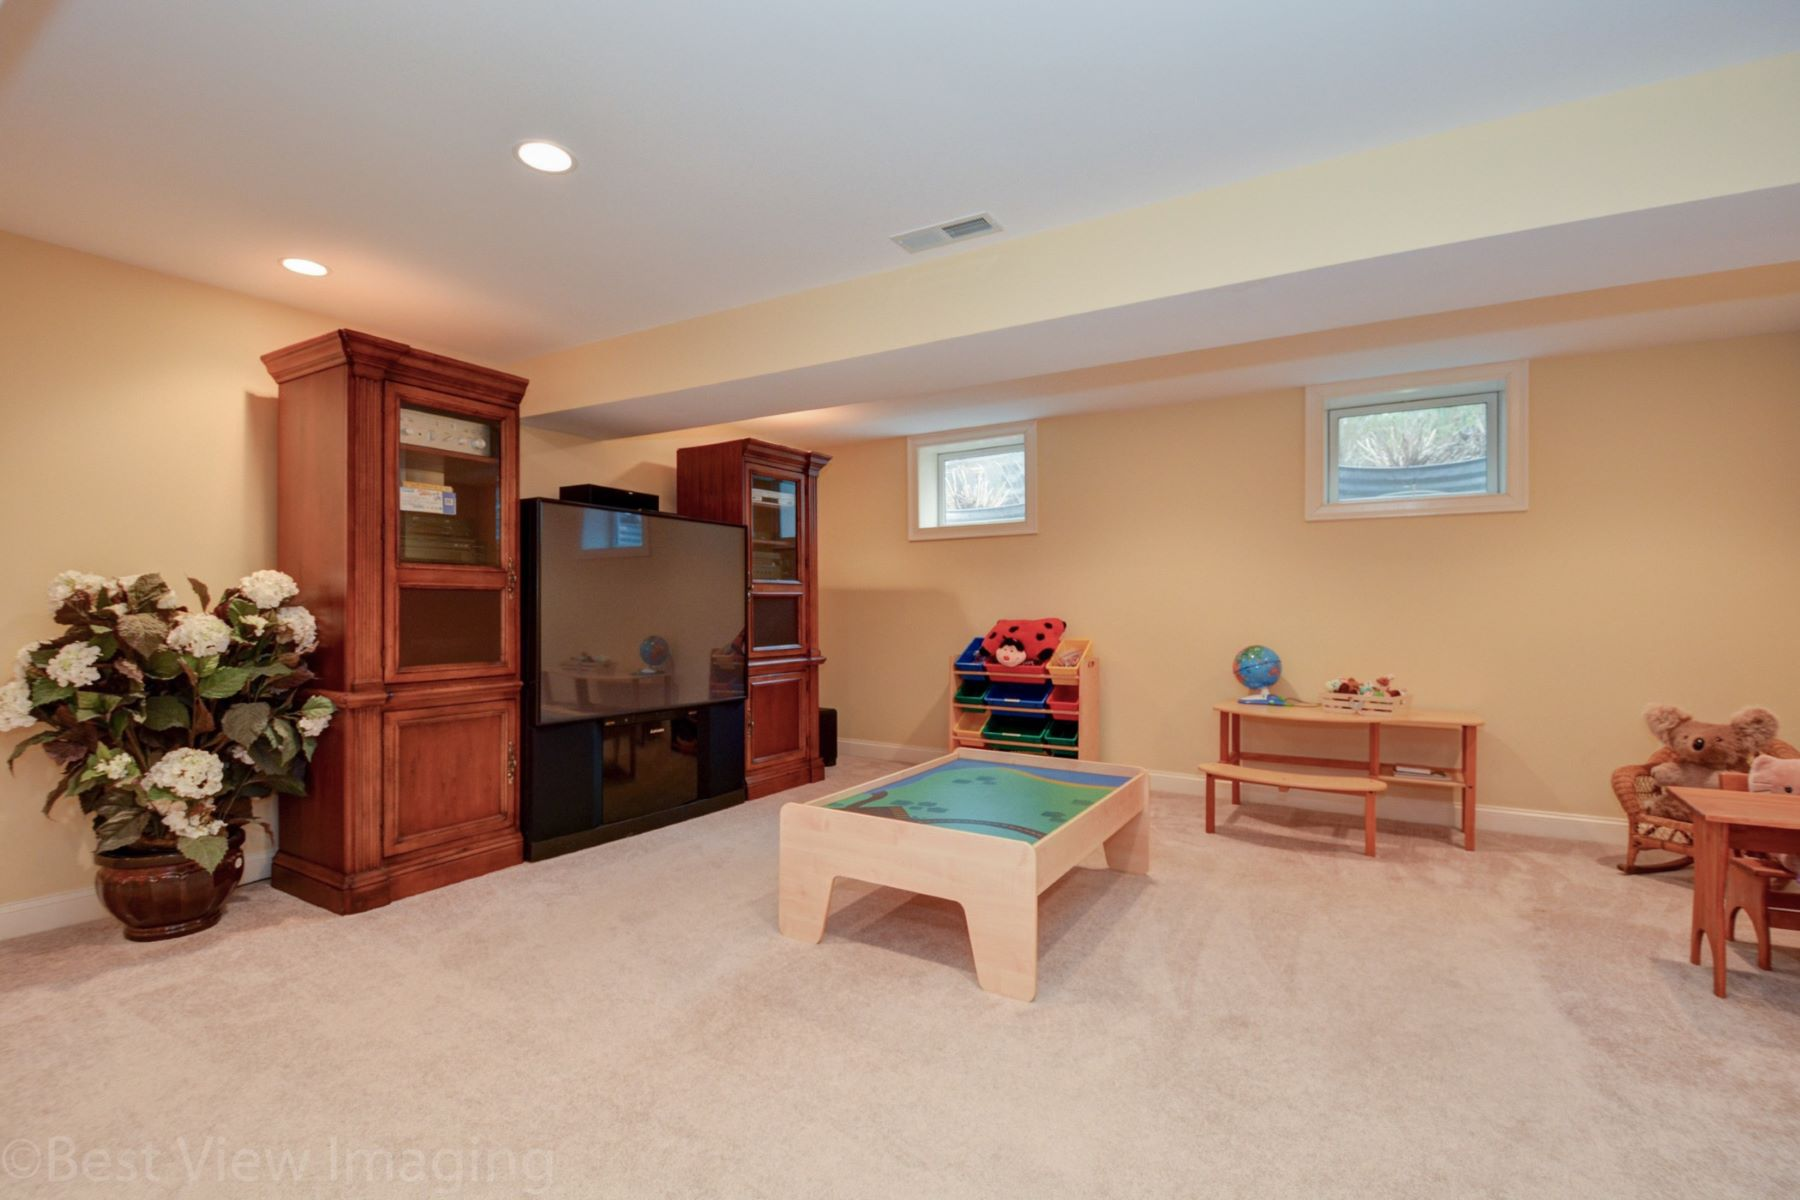 Additional photo for property listing at 38 Robinson Drive, Bedford 38 Robinson Dr Bedford, マサチューセッツ 01730 アメリカ合衆国